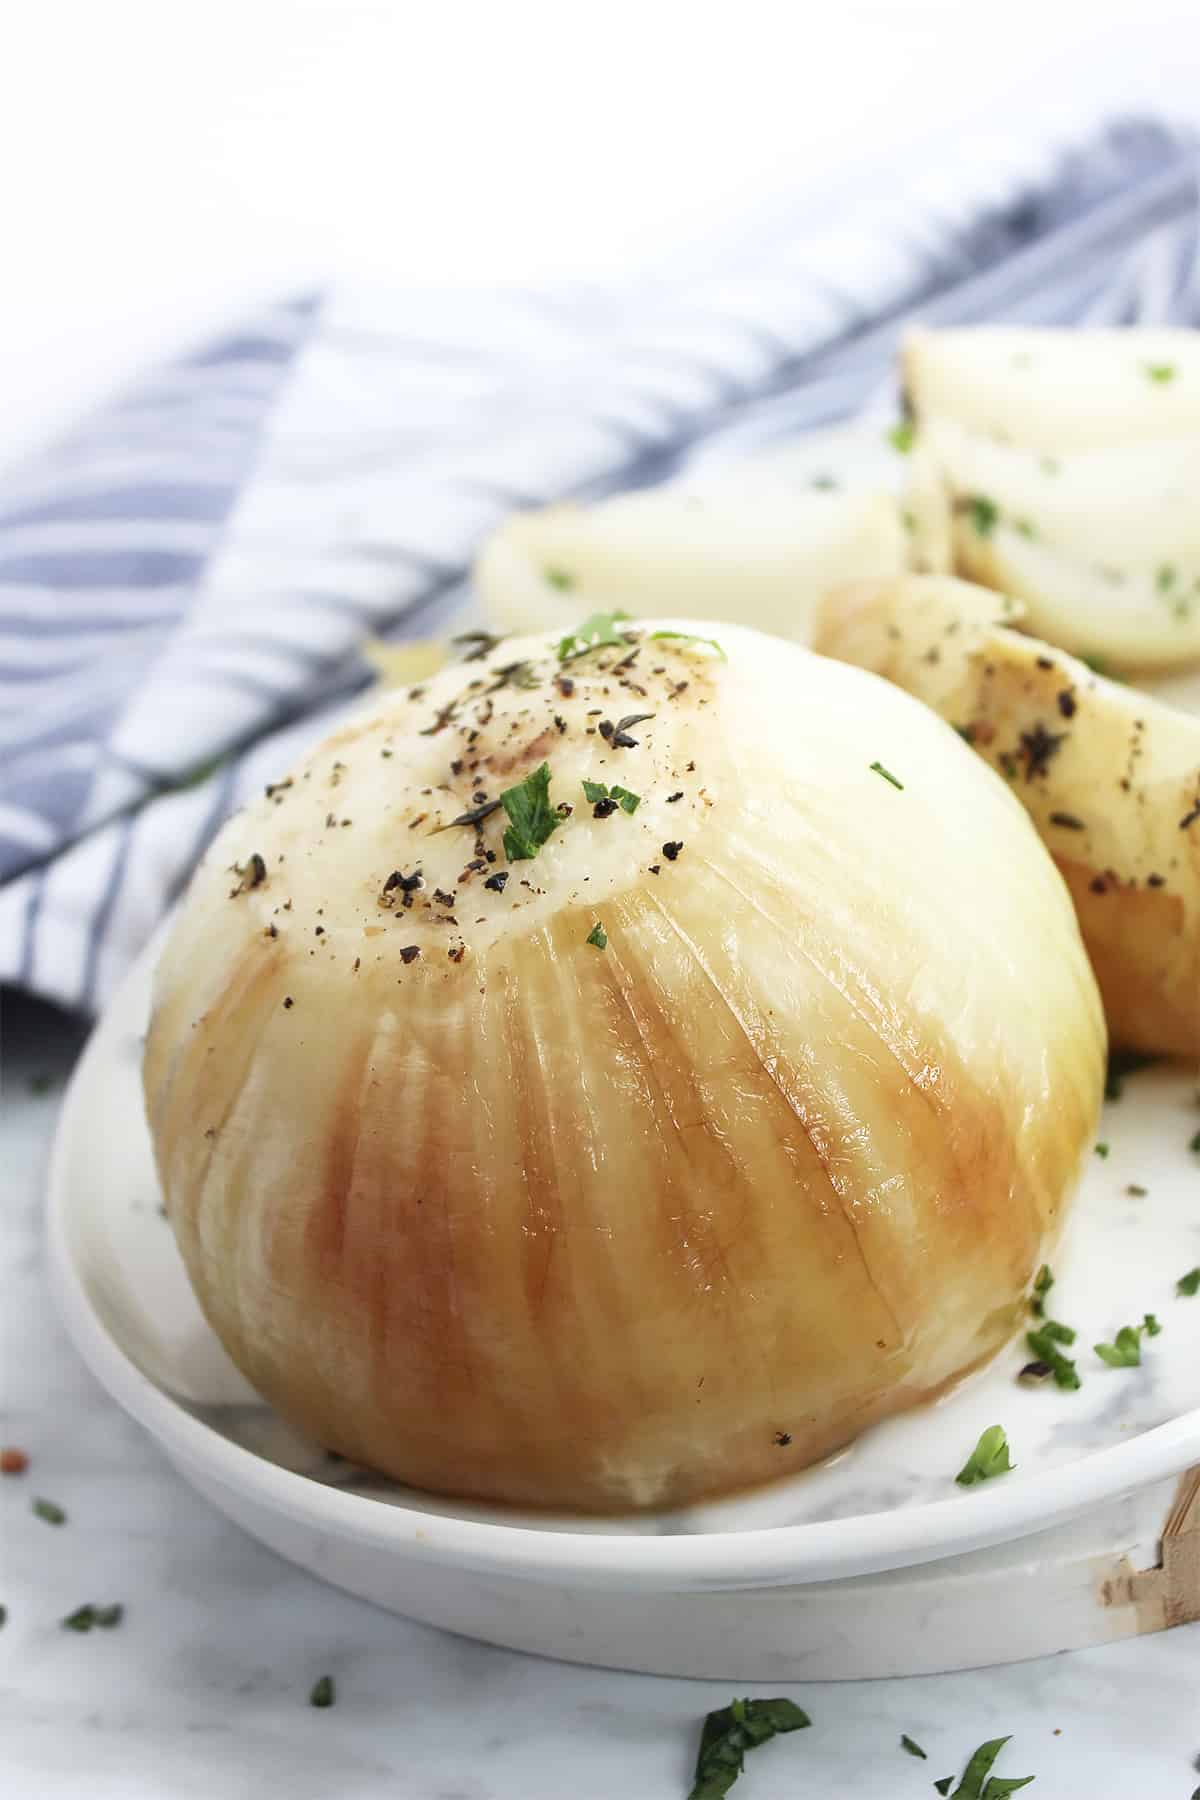 A whole roasted onion on a serving plate